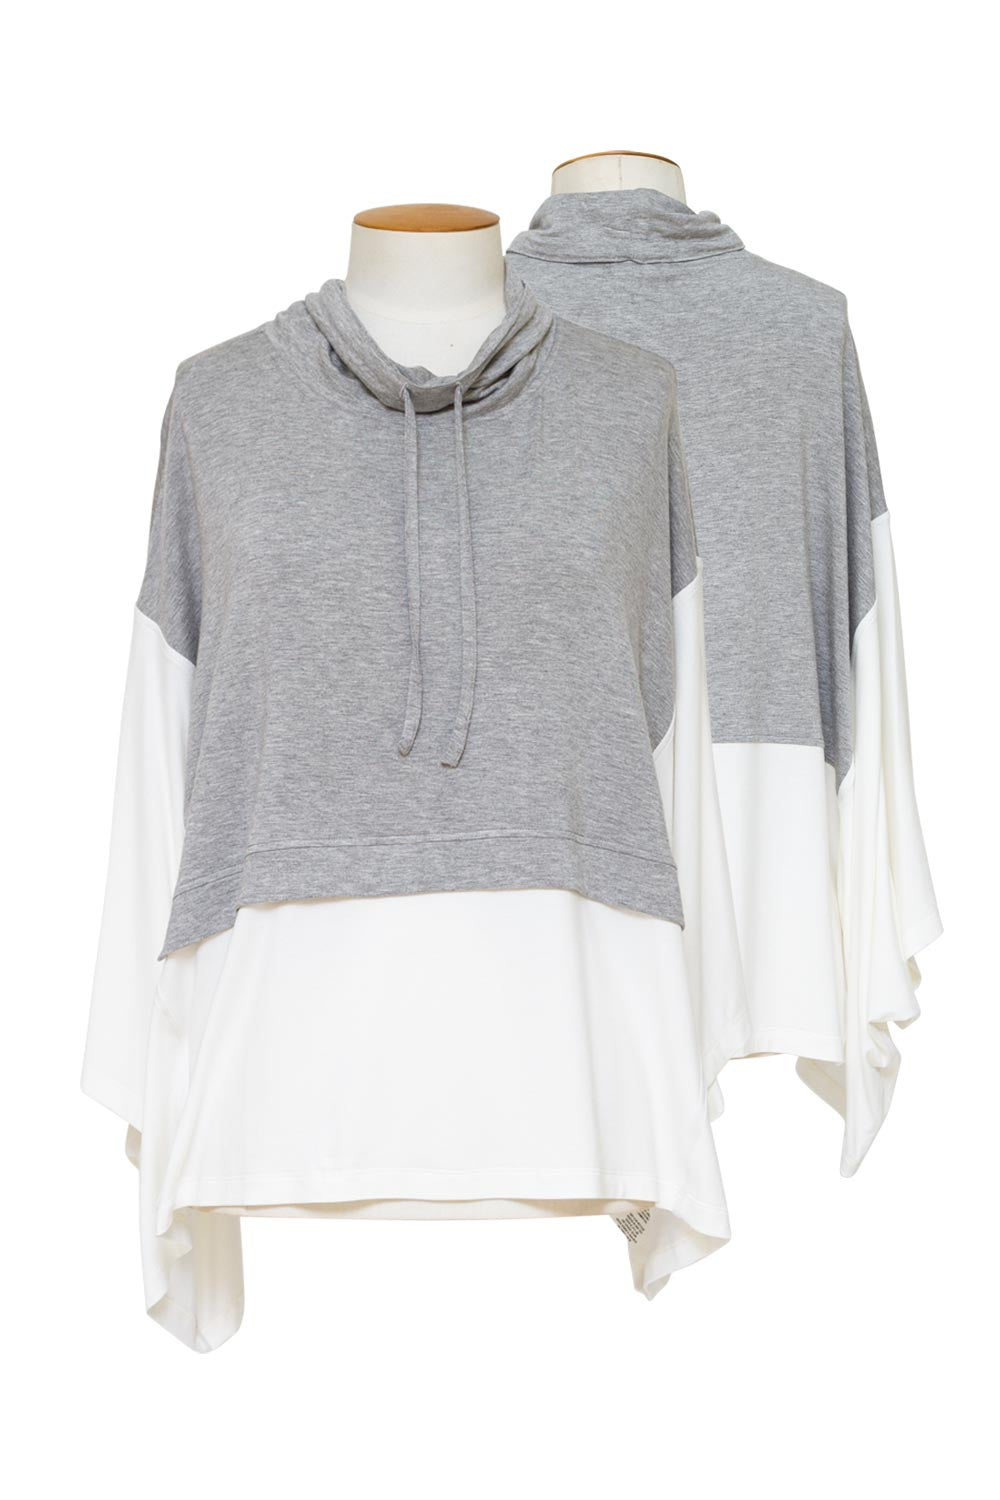 travellers-two-tone-cropped-tee